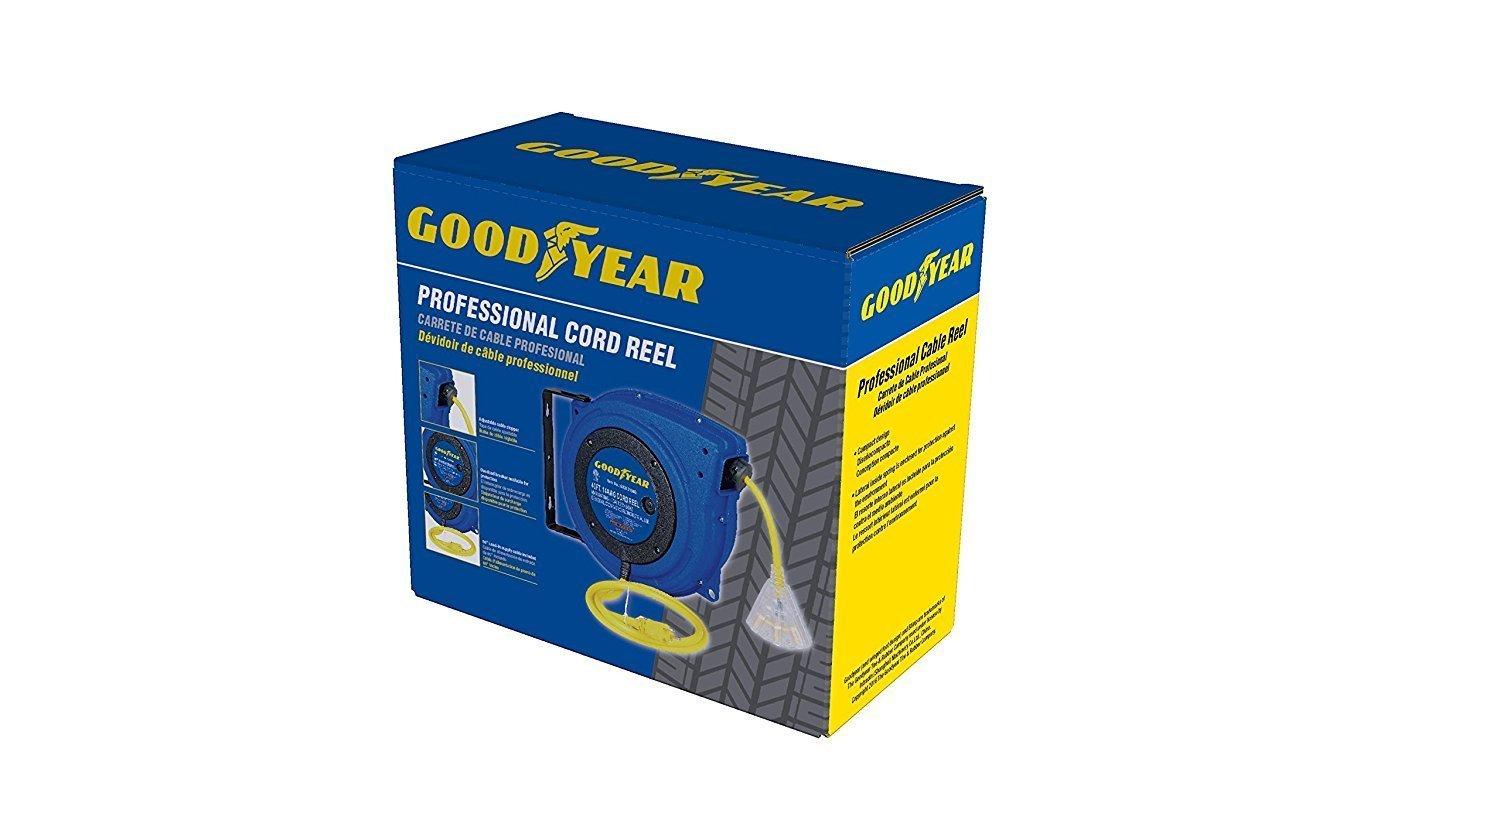 Goodyear Extension Cord Reel Heavy Duty, 40 ft., 12AWG/3C SJTOW, Triple Tap with LED Lighted Connector by Goodyear (Image #8)